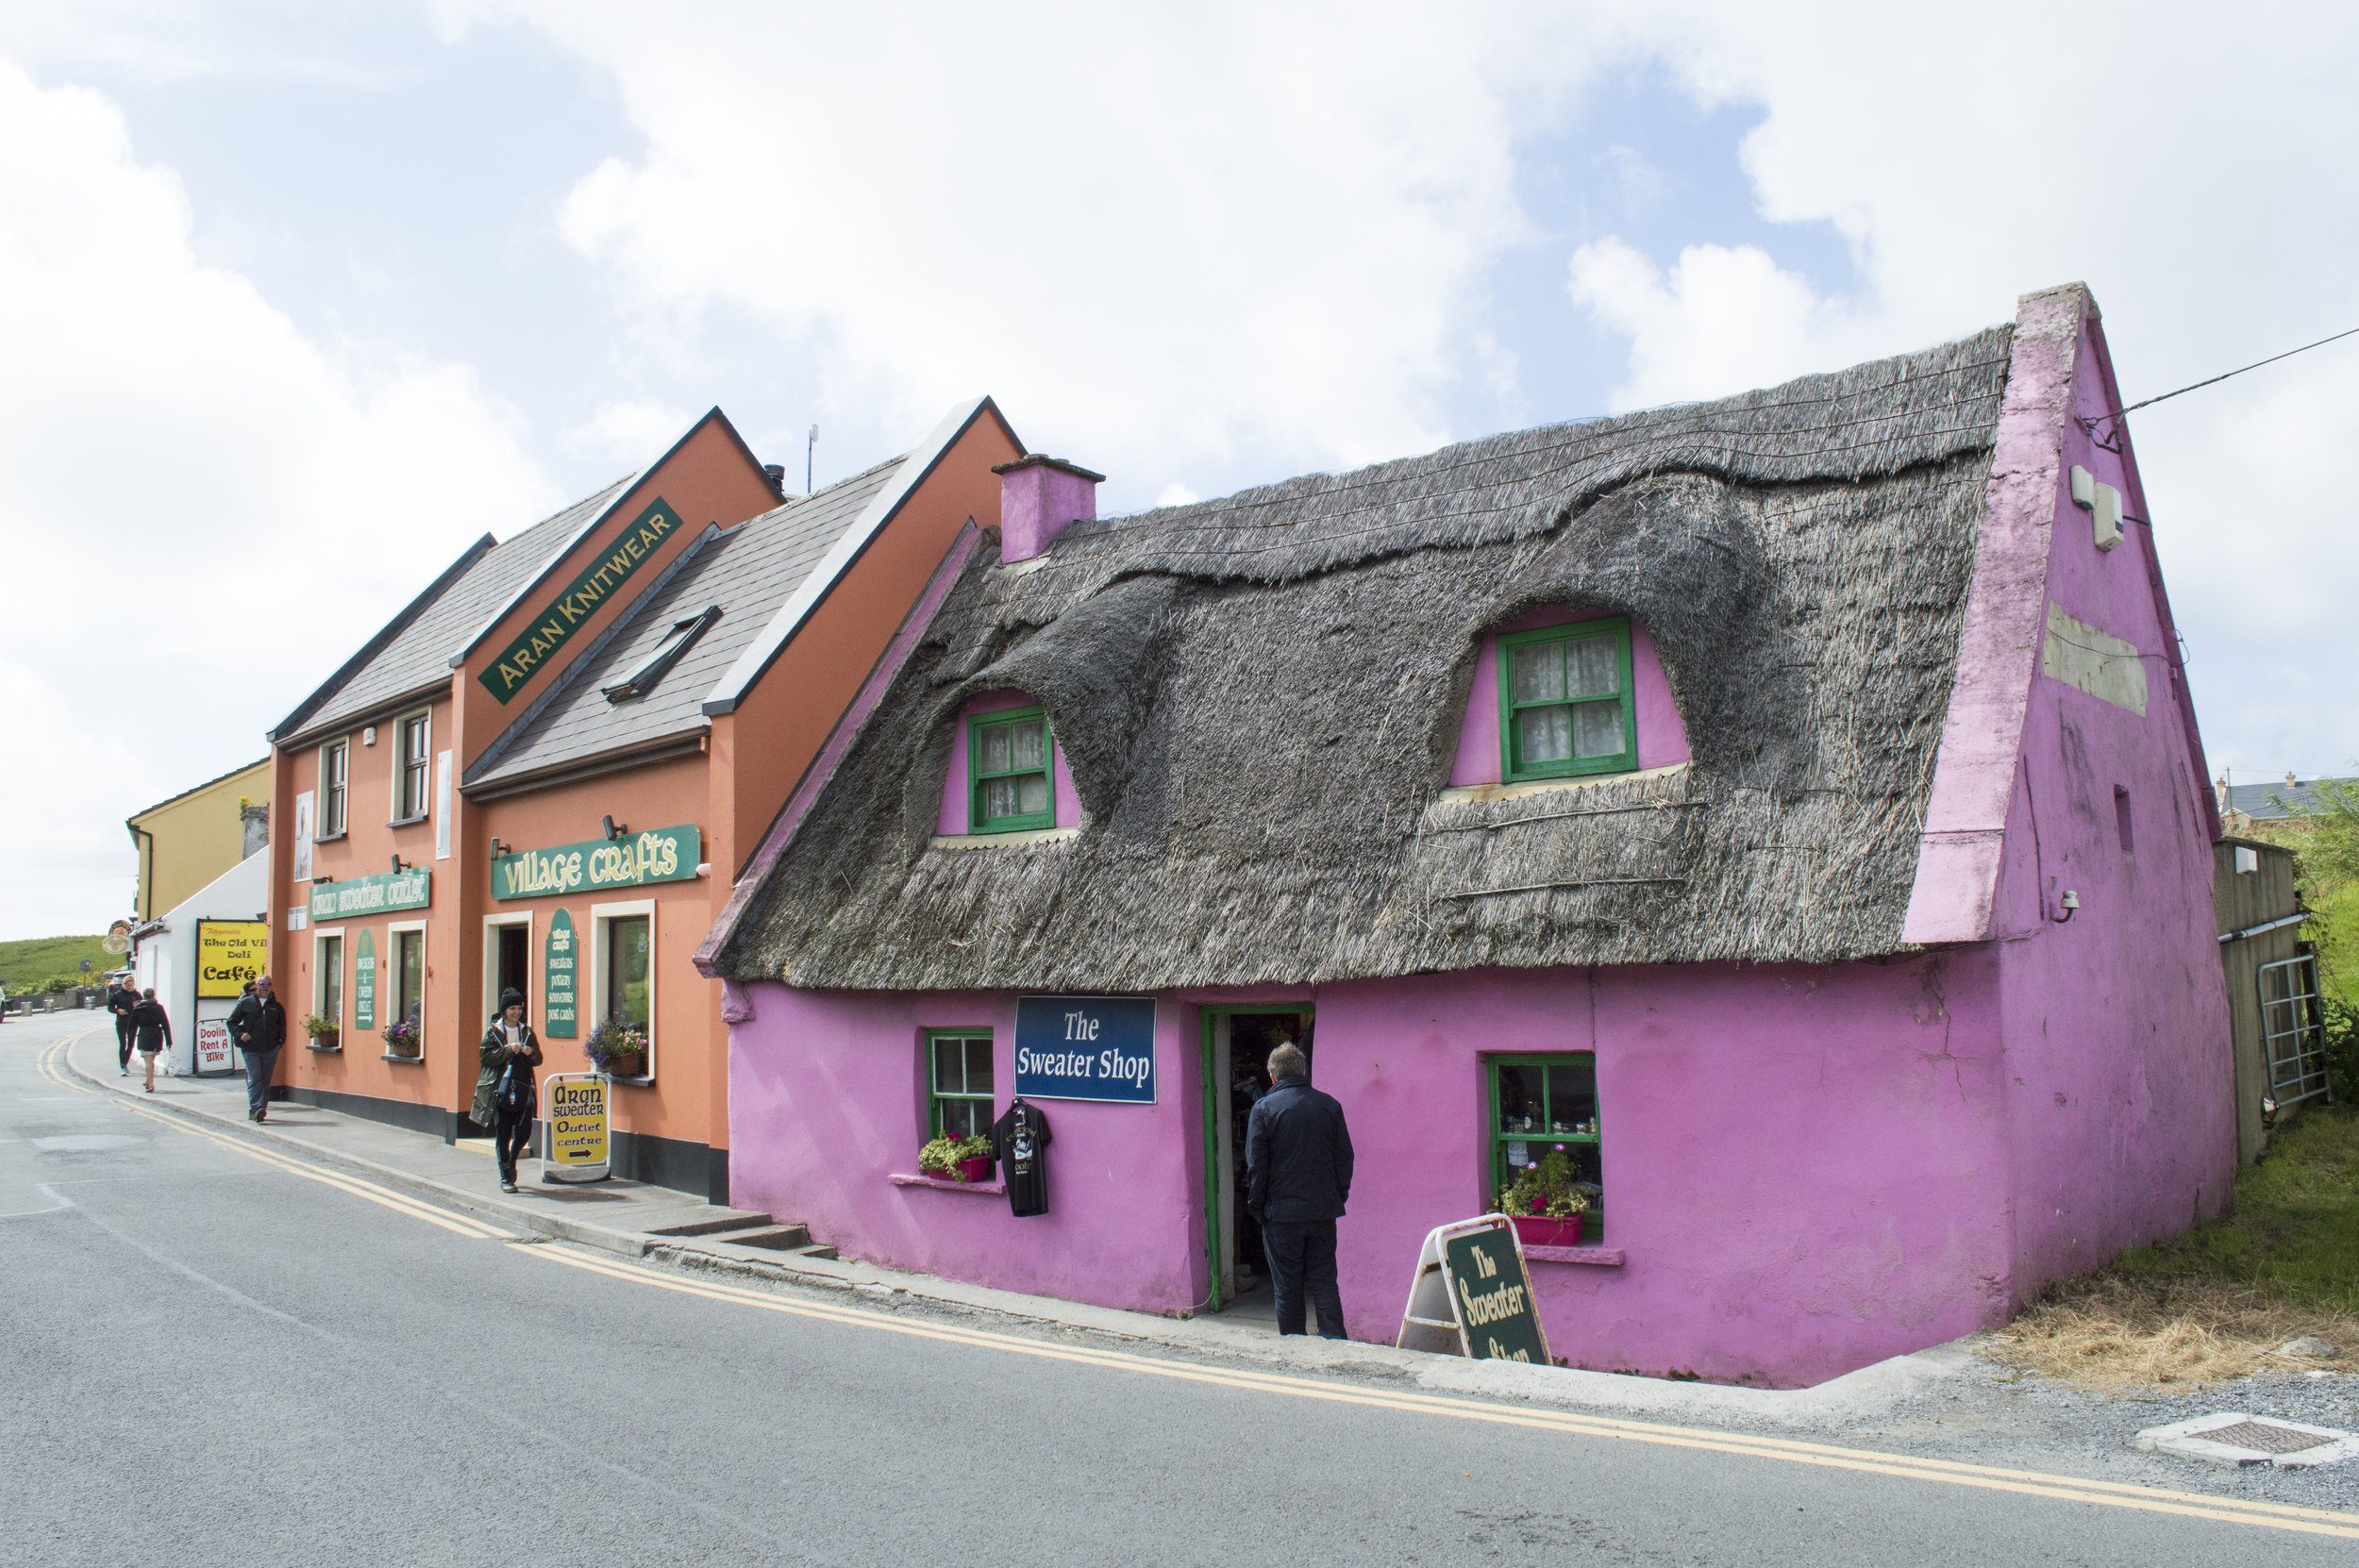 bought myself my first irish sweater here! i absolutely loved how photogenic this shop was